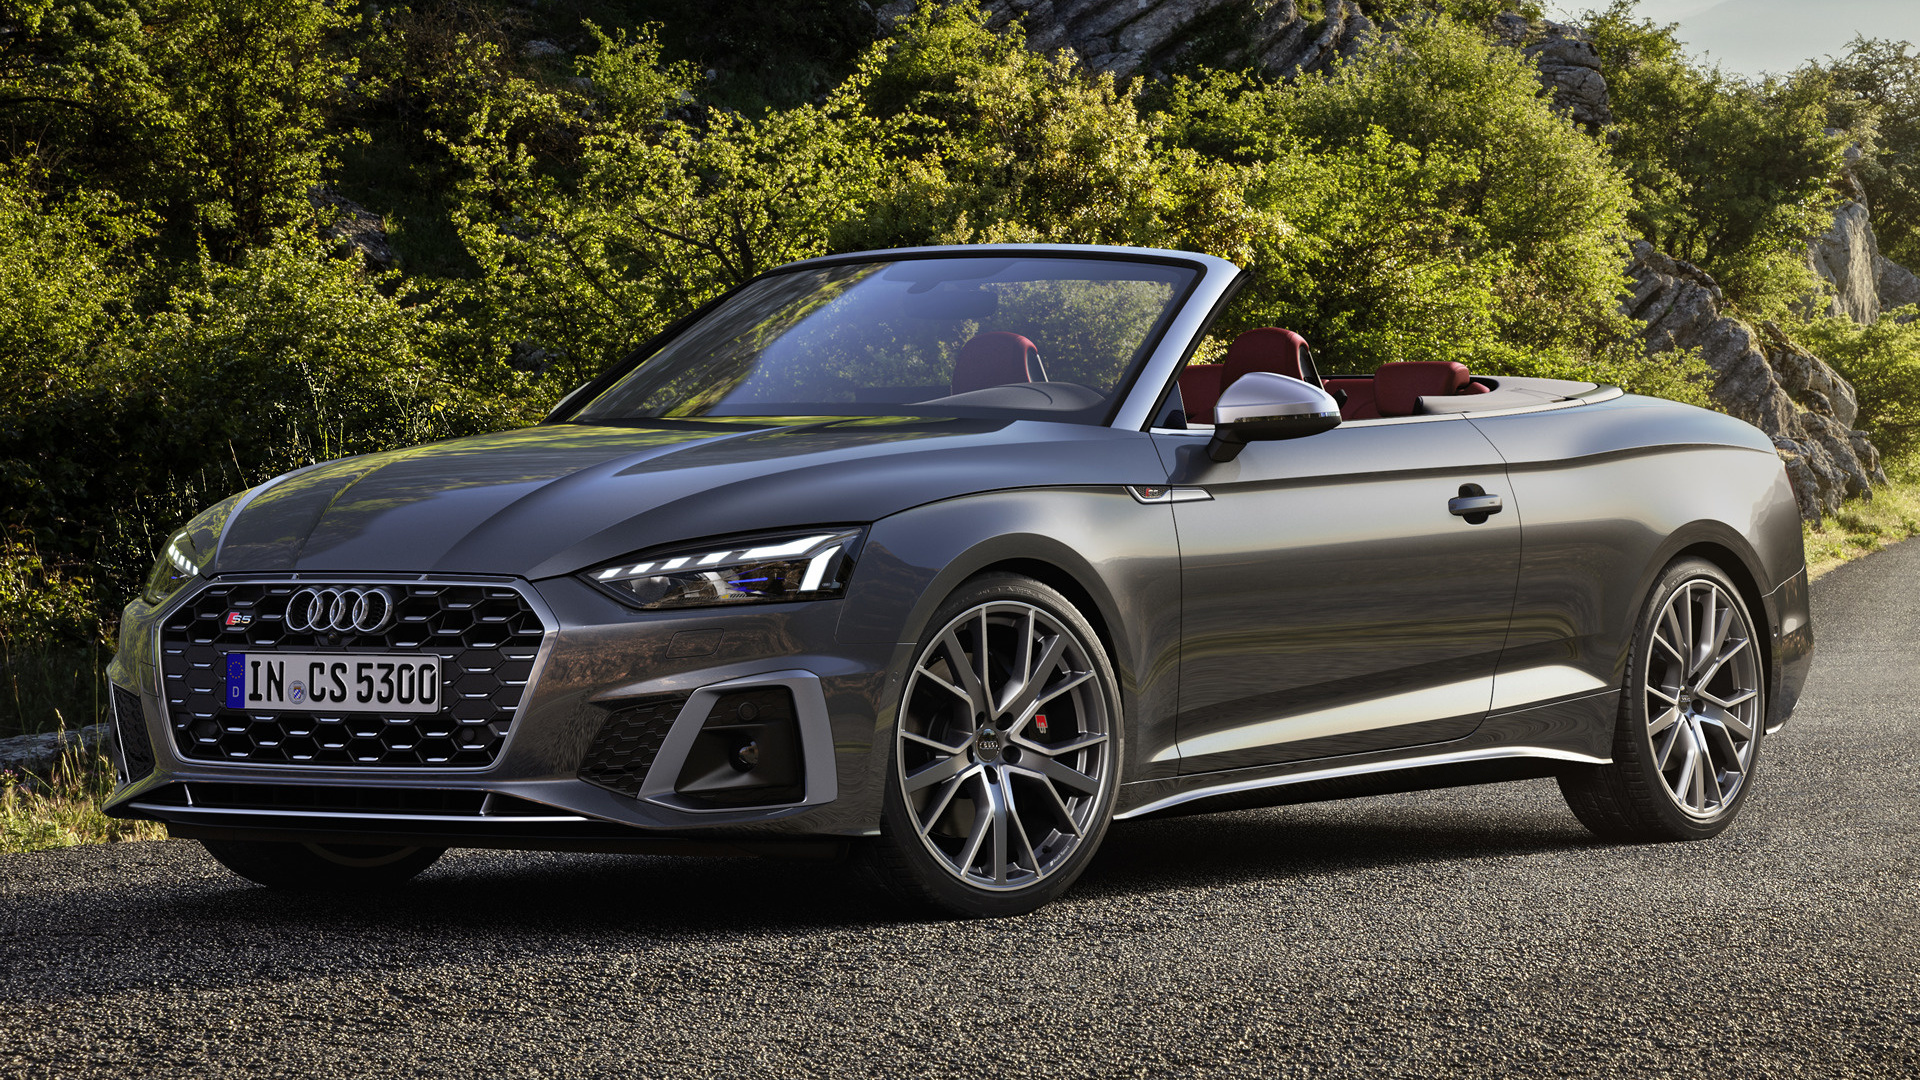 2020 Audi Rs5 Cabriolet First Drive